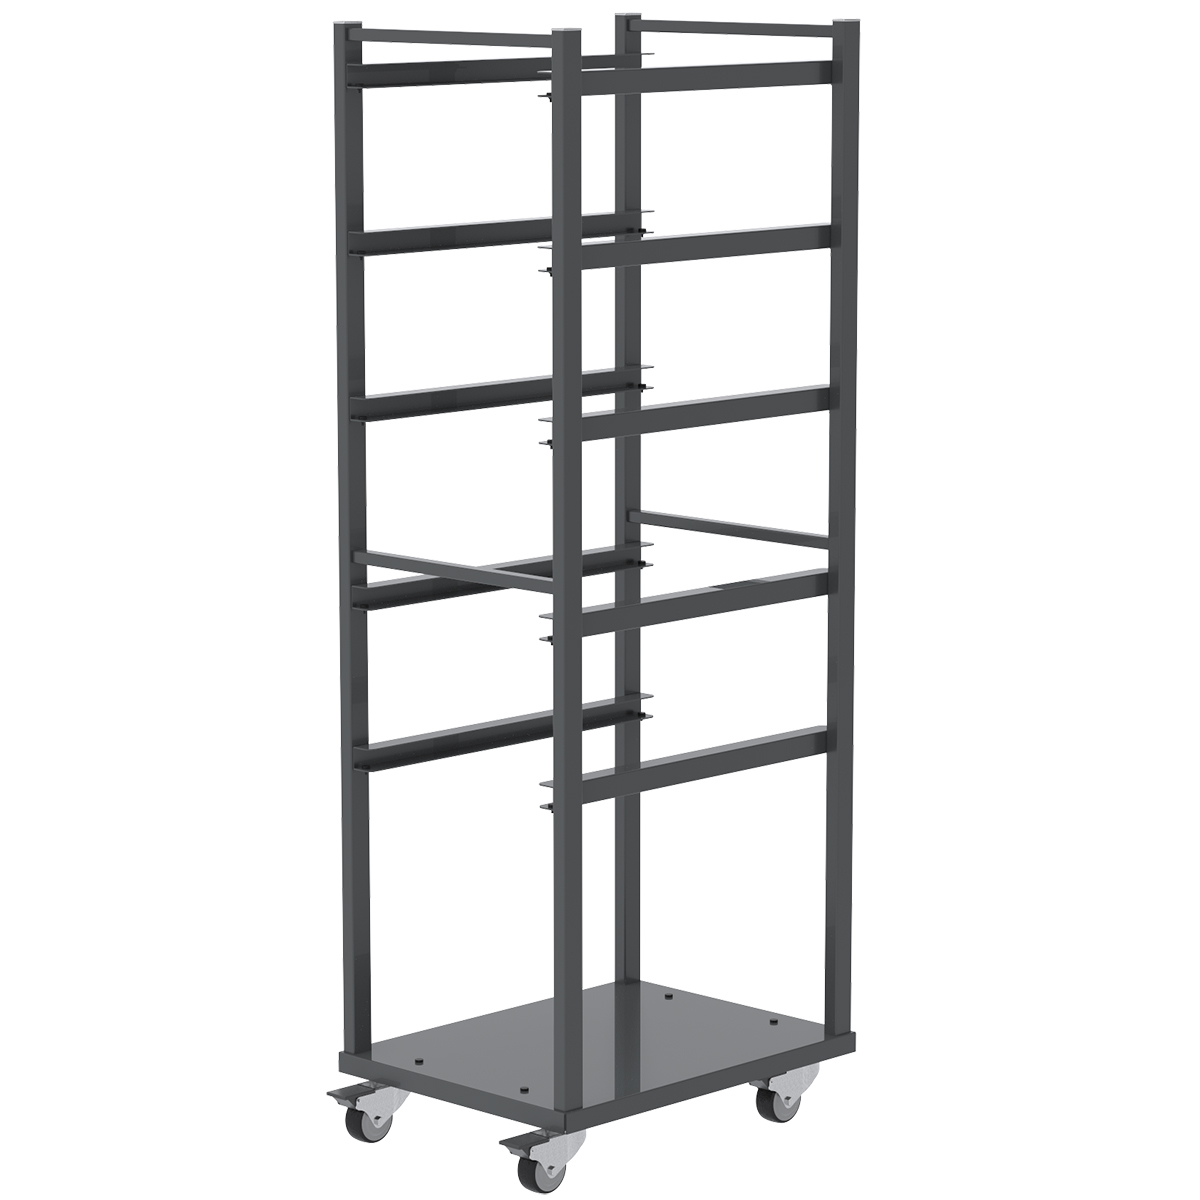 Item DISCONTINUED by Manufacturer.  6 Shelf Rack For Jumbo Lug Tub, 3